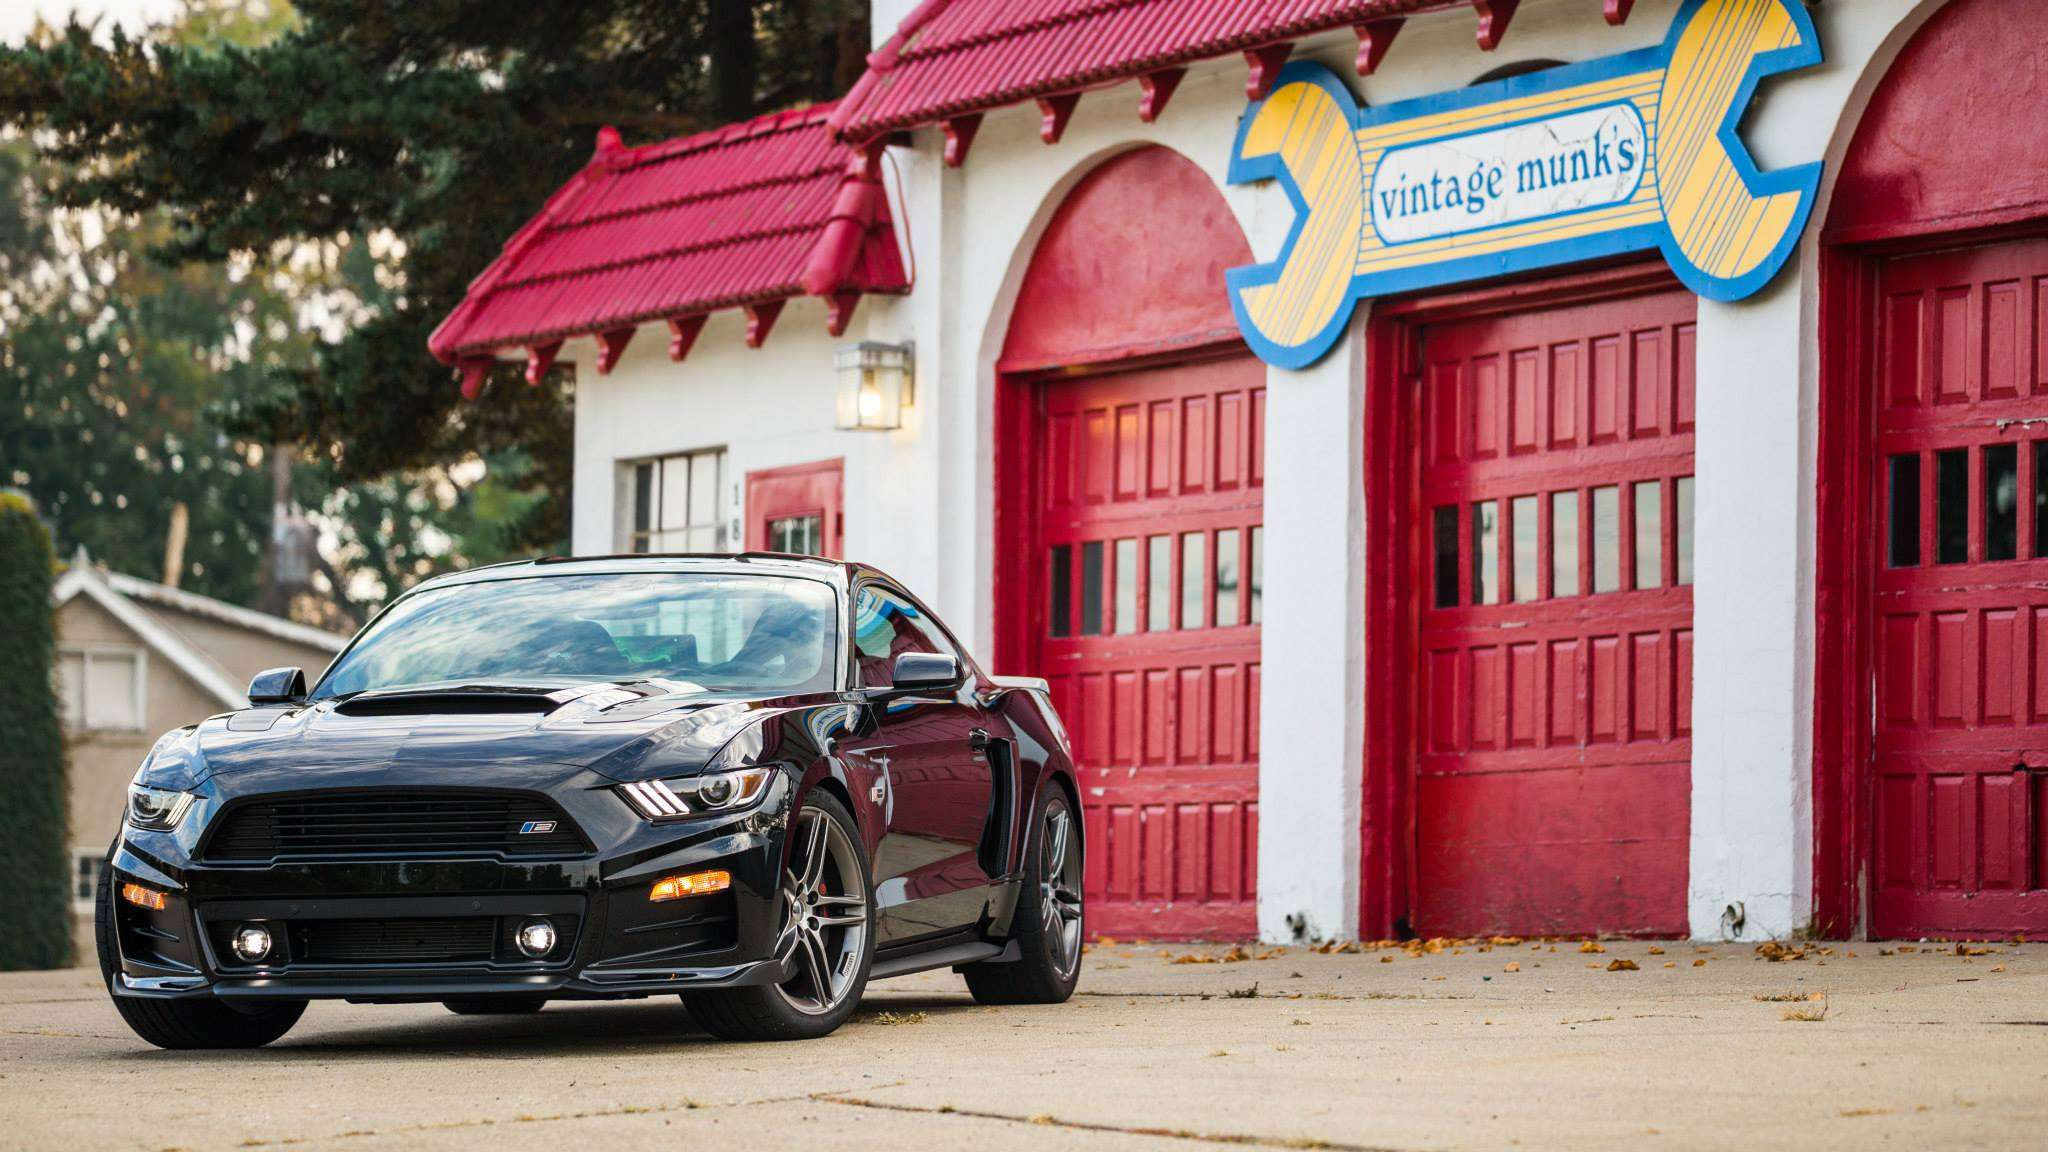 Ford Mustang 2015 by Roush Foto: Roush & www.automobilemag.com Roush